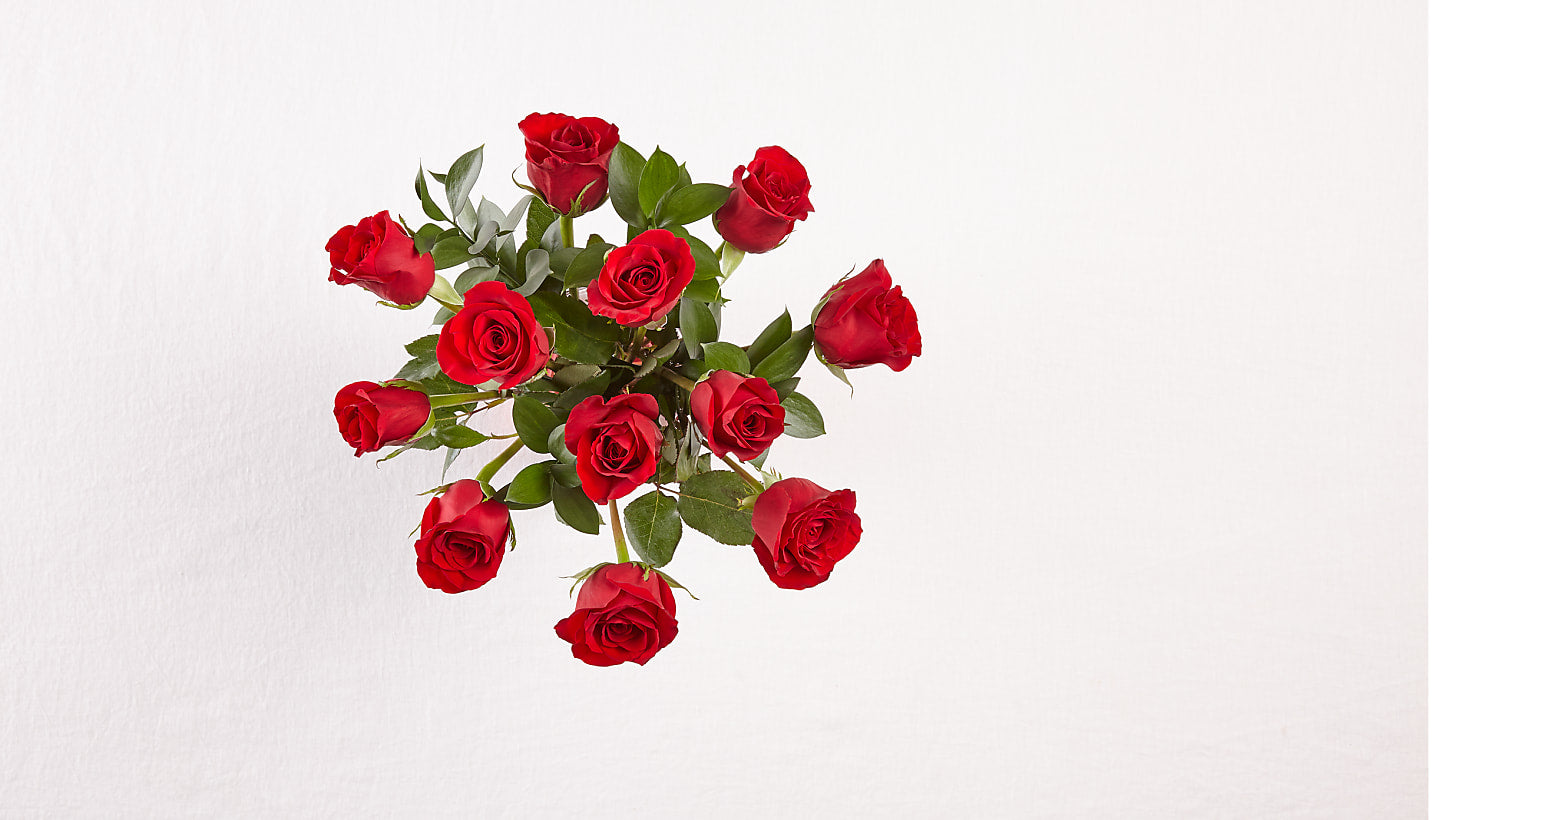 Red Rose Bouquet - Image 3 Of 4